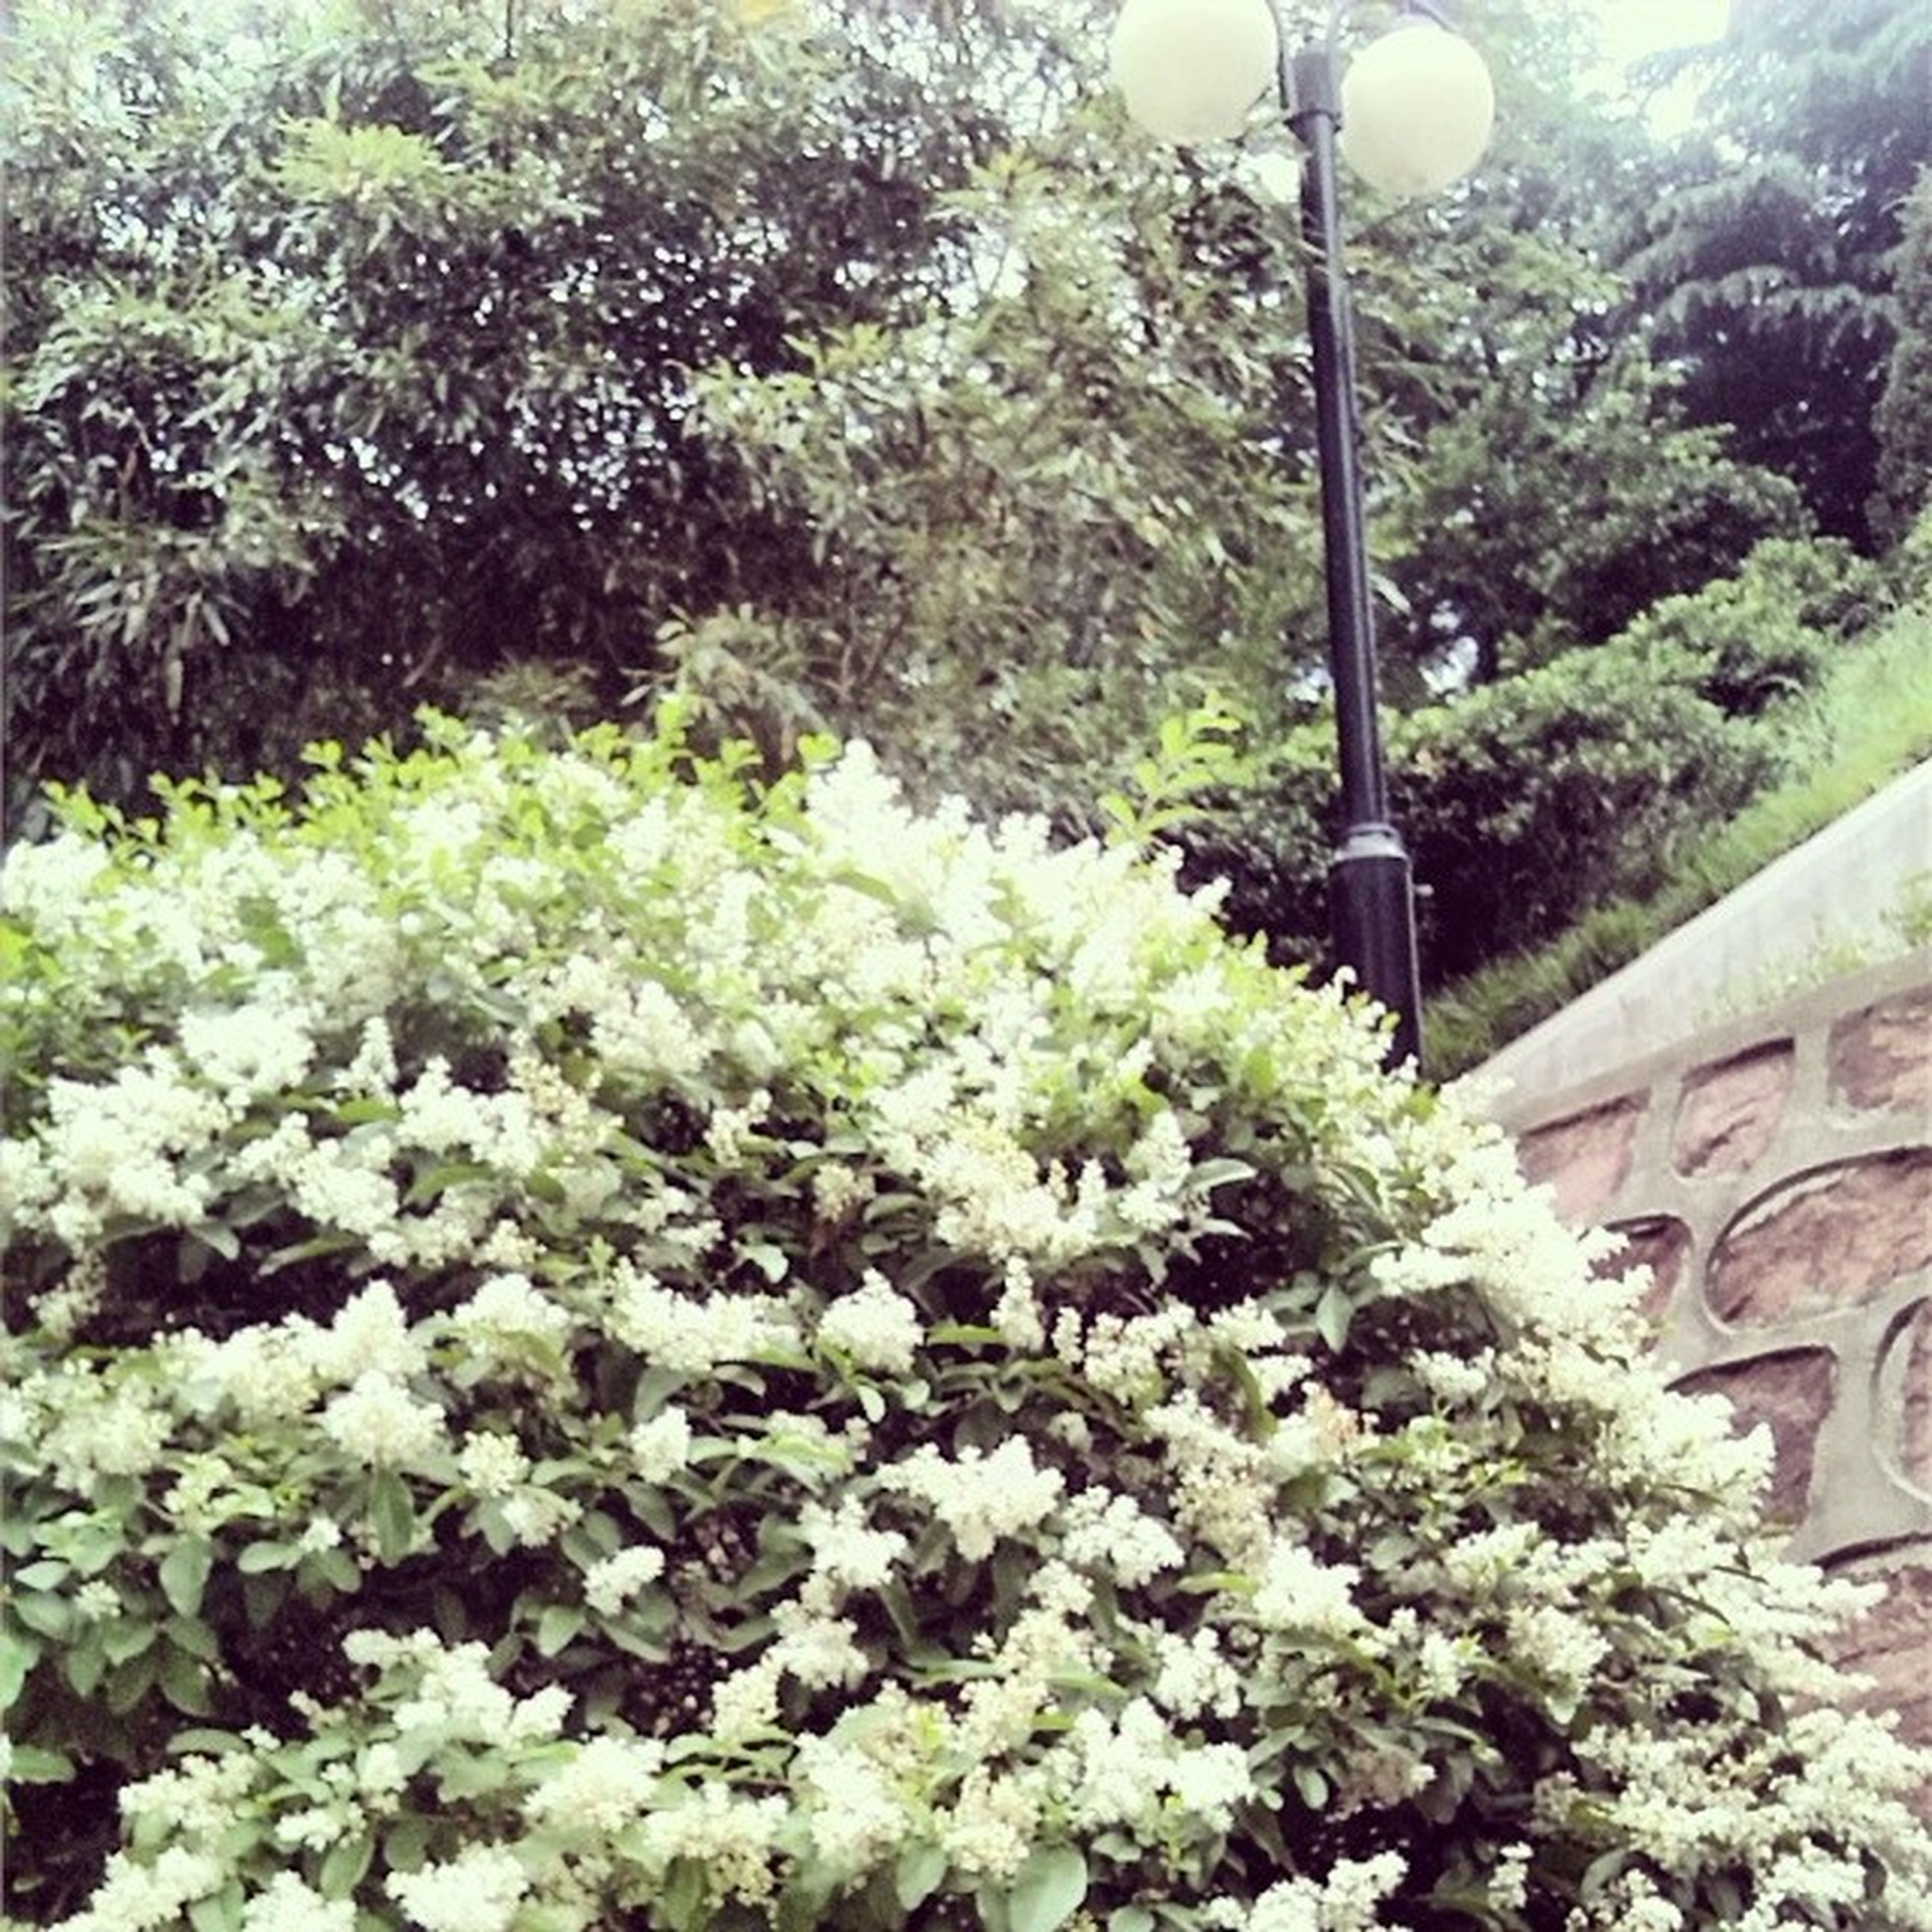 flower, growth, plant, tree, beauty in nature, nature, freshness, green color, white color, street light, fragility, growing, built structure, sunlight, potted plant, day, outdoors, blooming, in bloom, no people